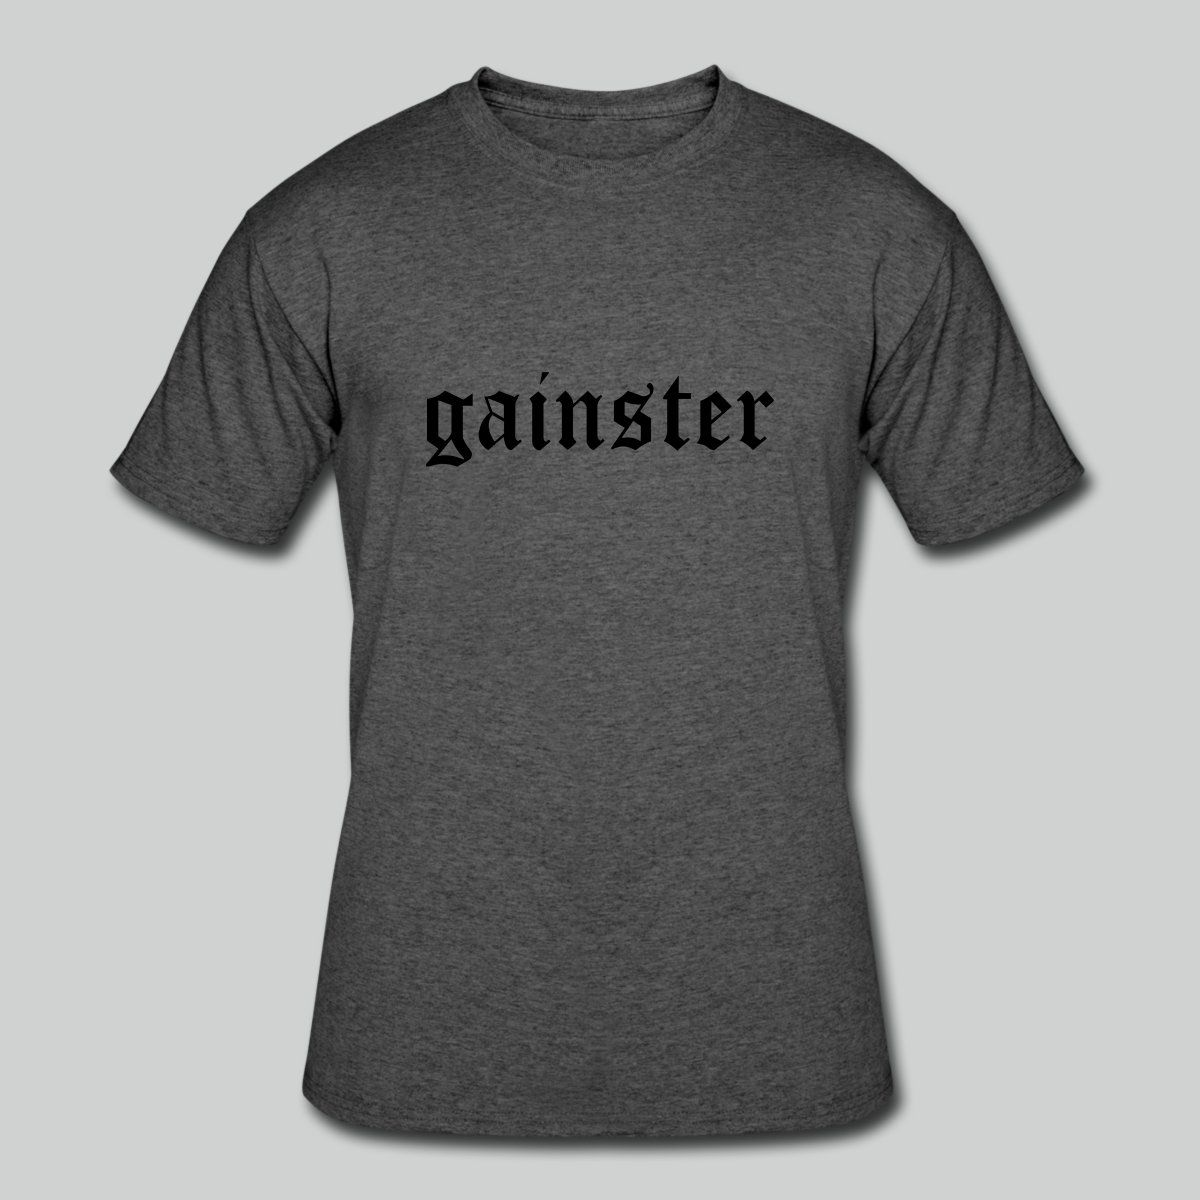 Inspiration Fitness T-shirt Weights Power Lifting Funny Gym Shirt Gainster Shirt Motivation Workout Gym Tee Gains Gift